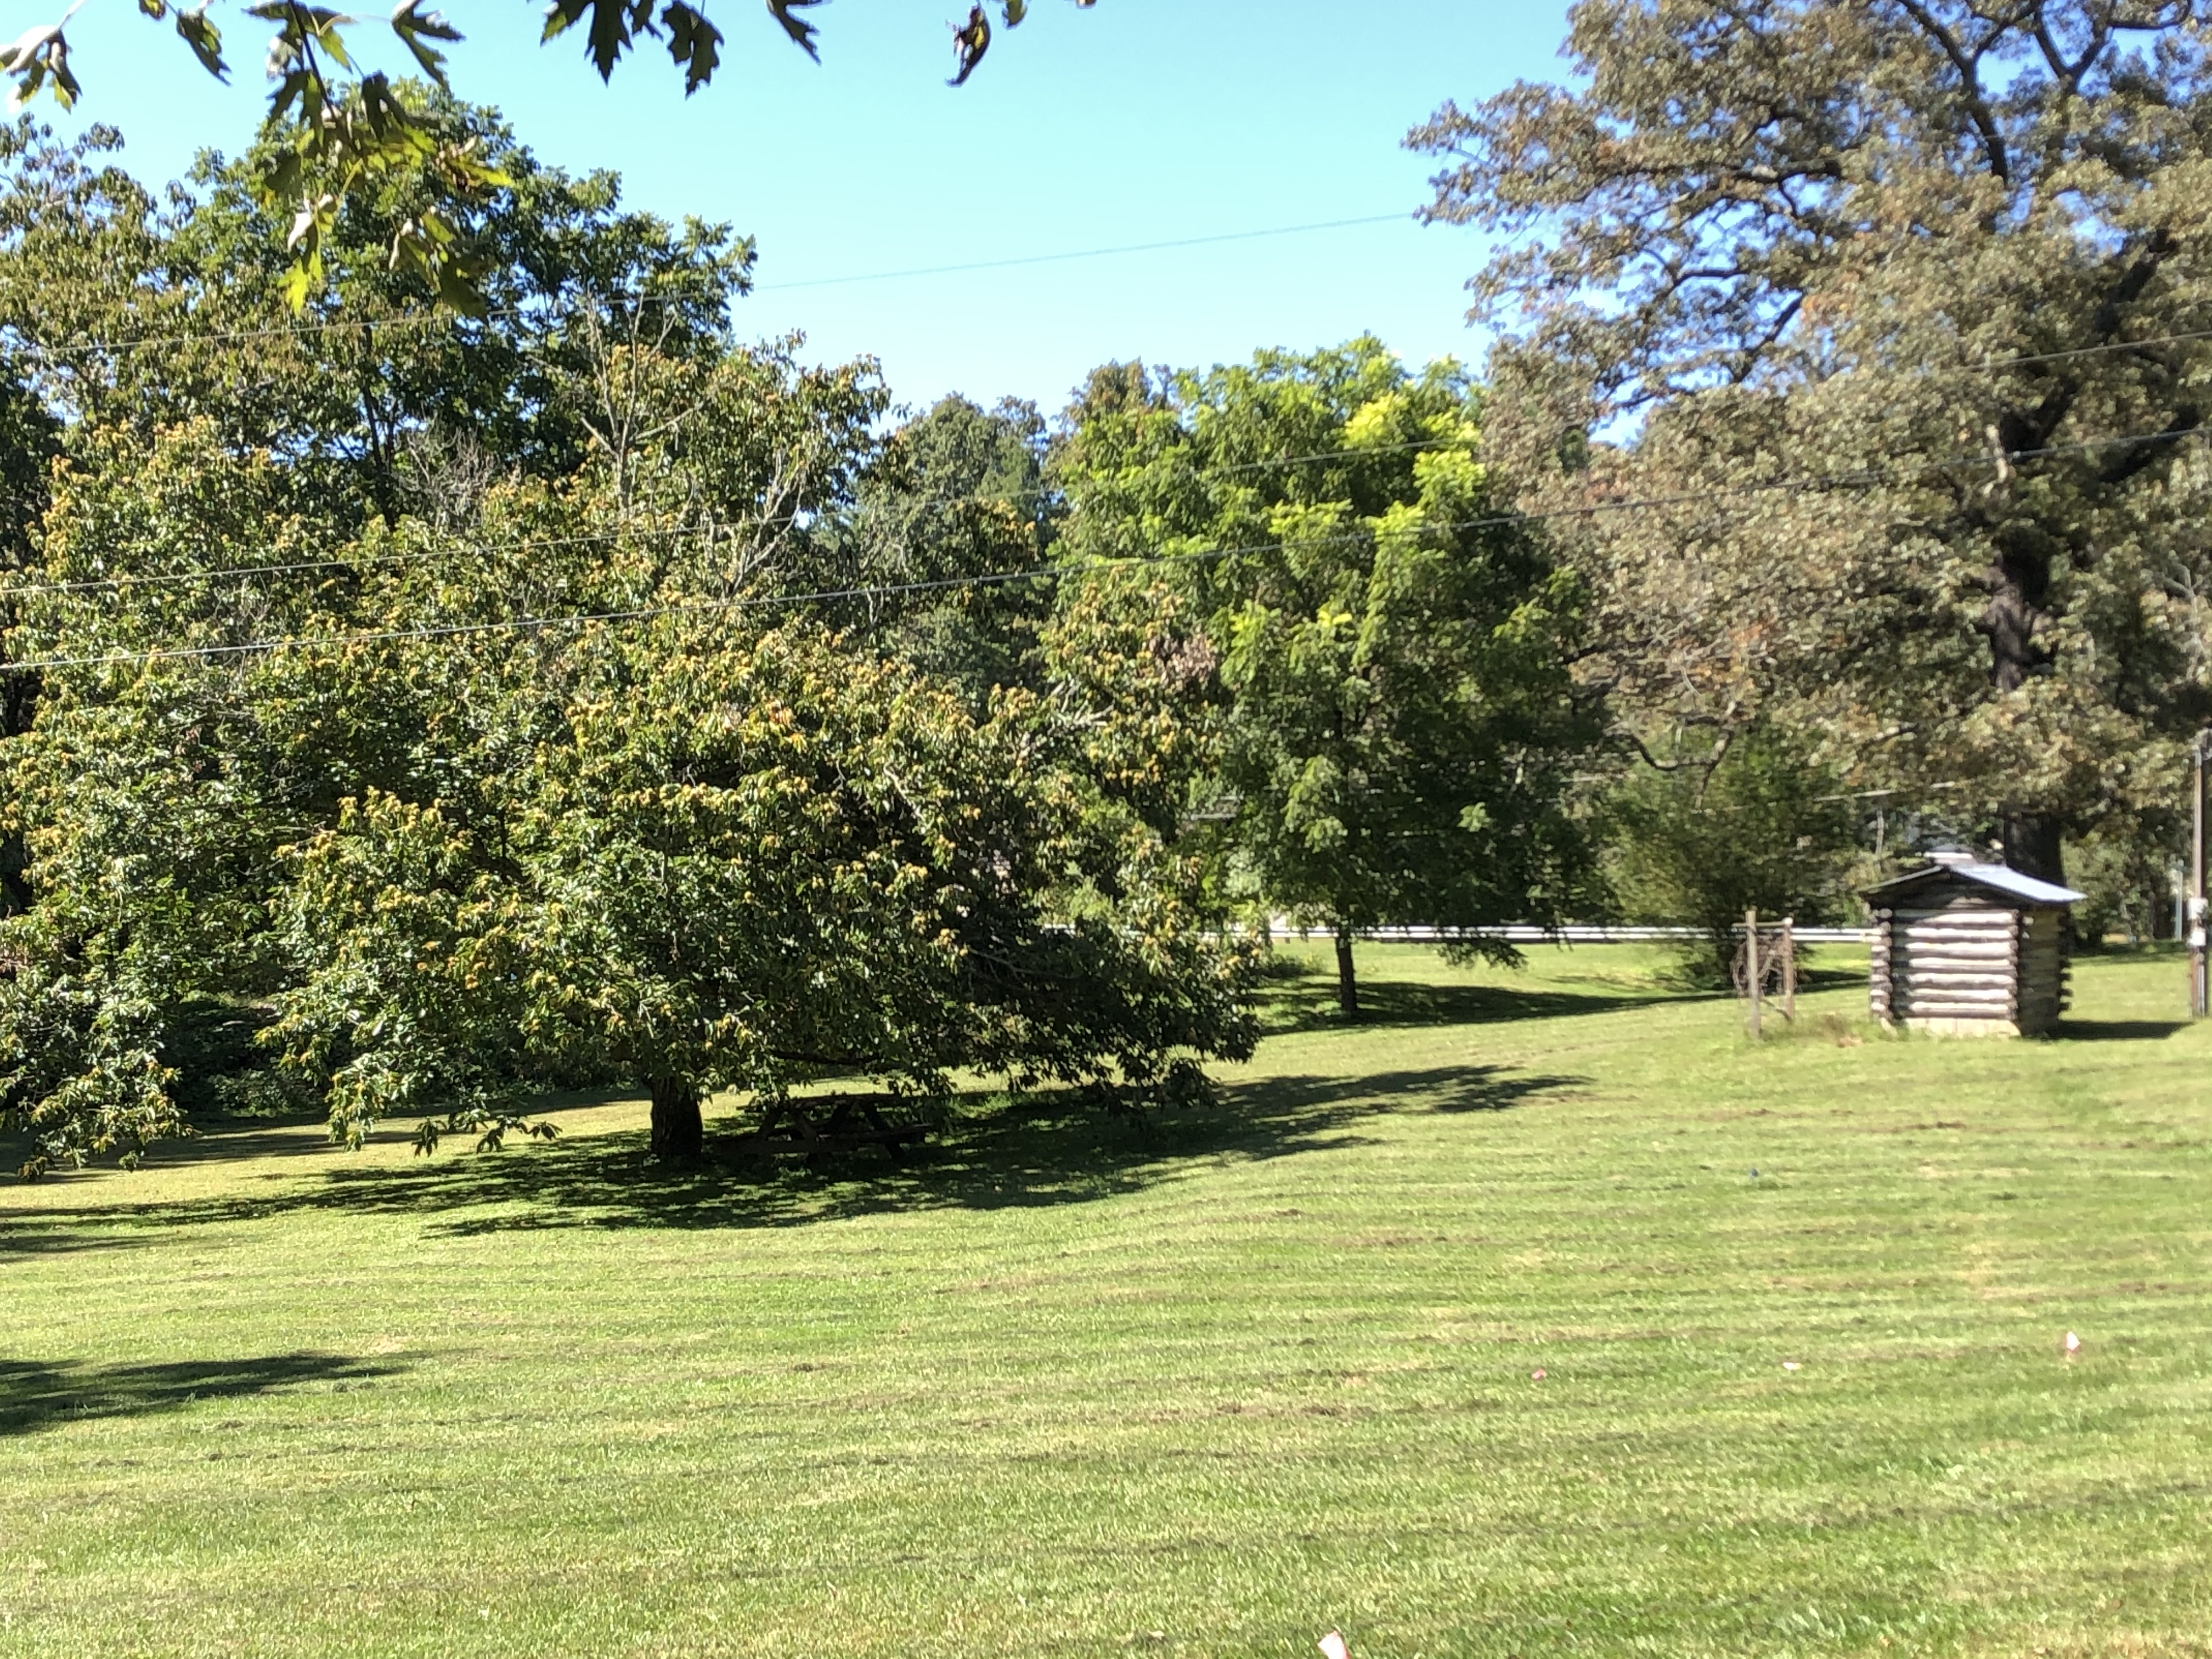 large grassy field for games, dog walking, and play